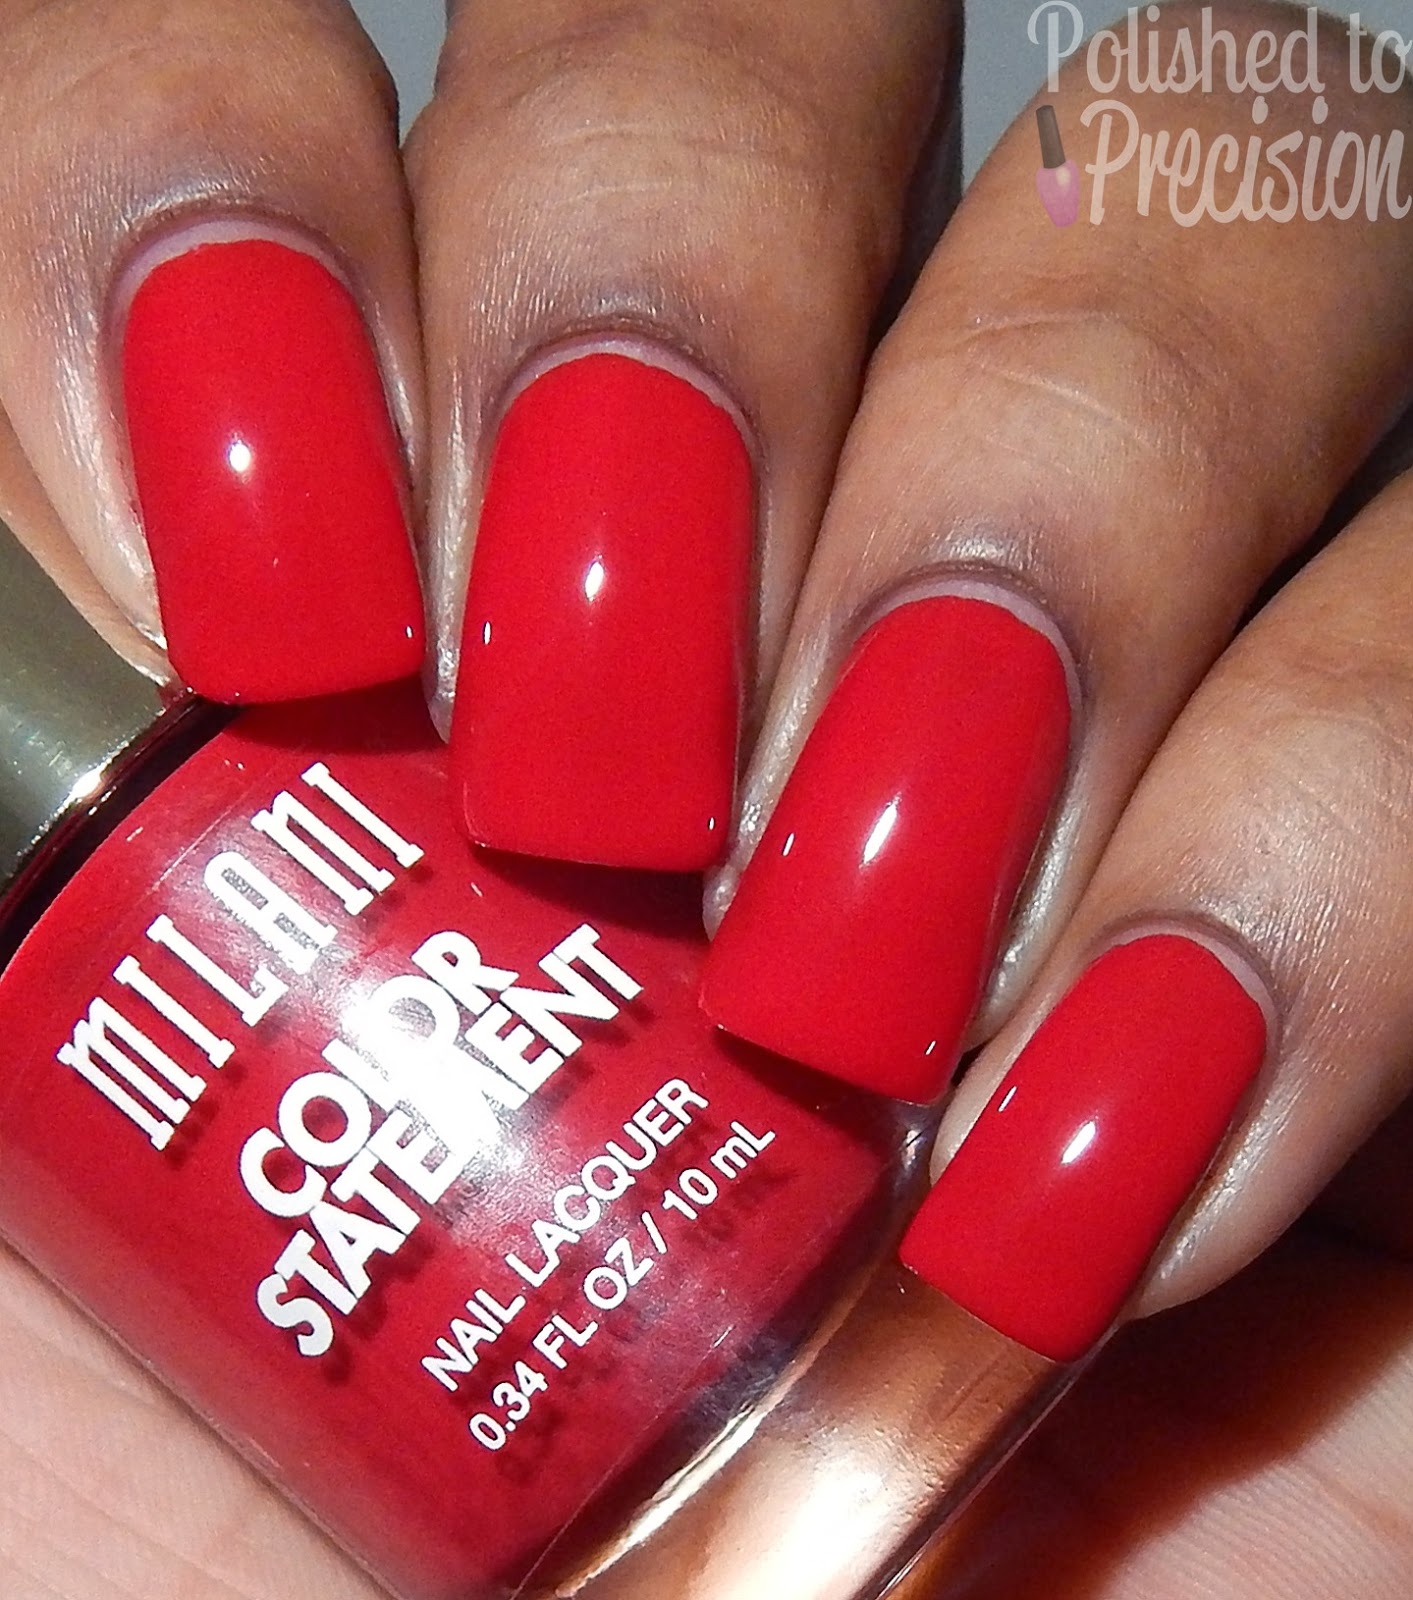 MIlani Red Label